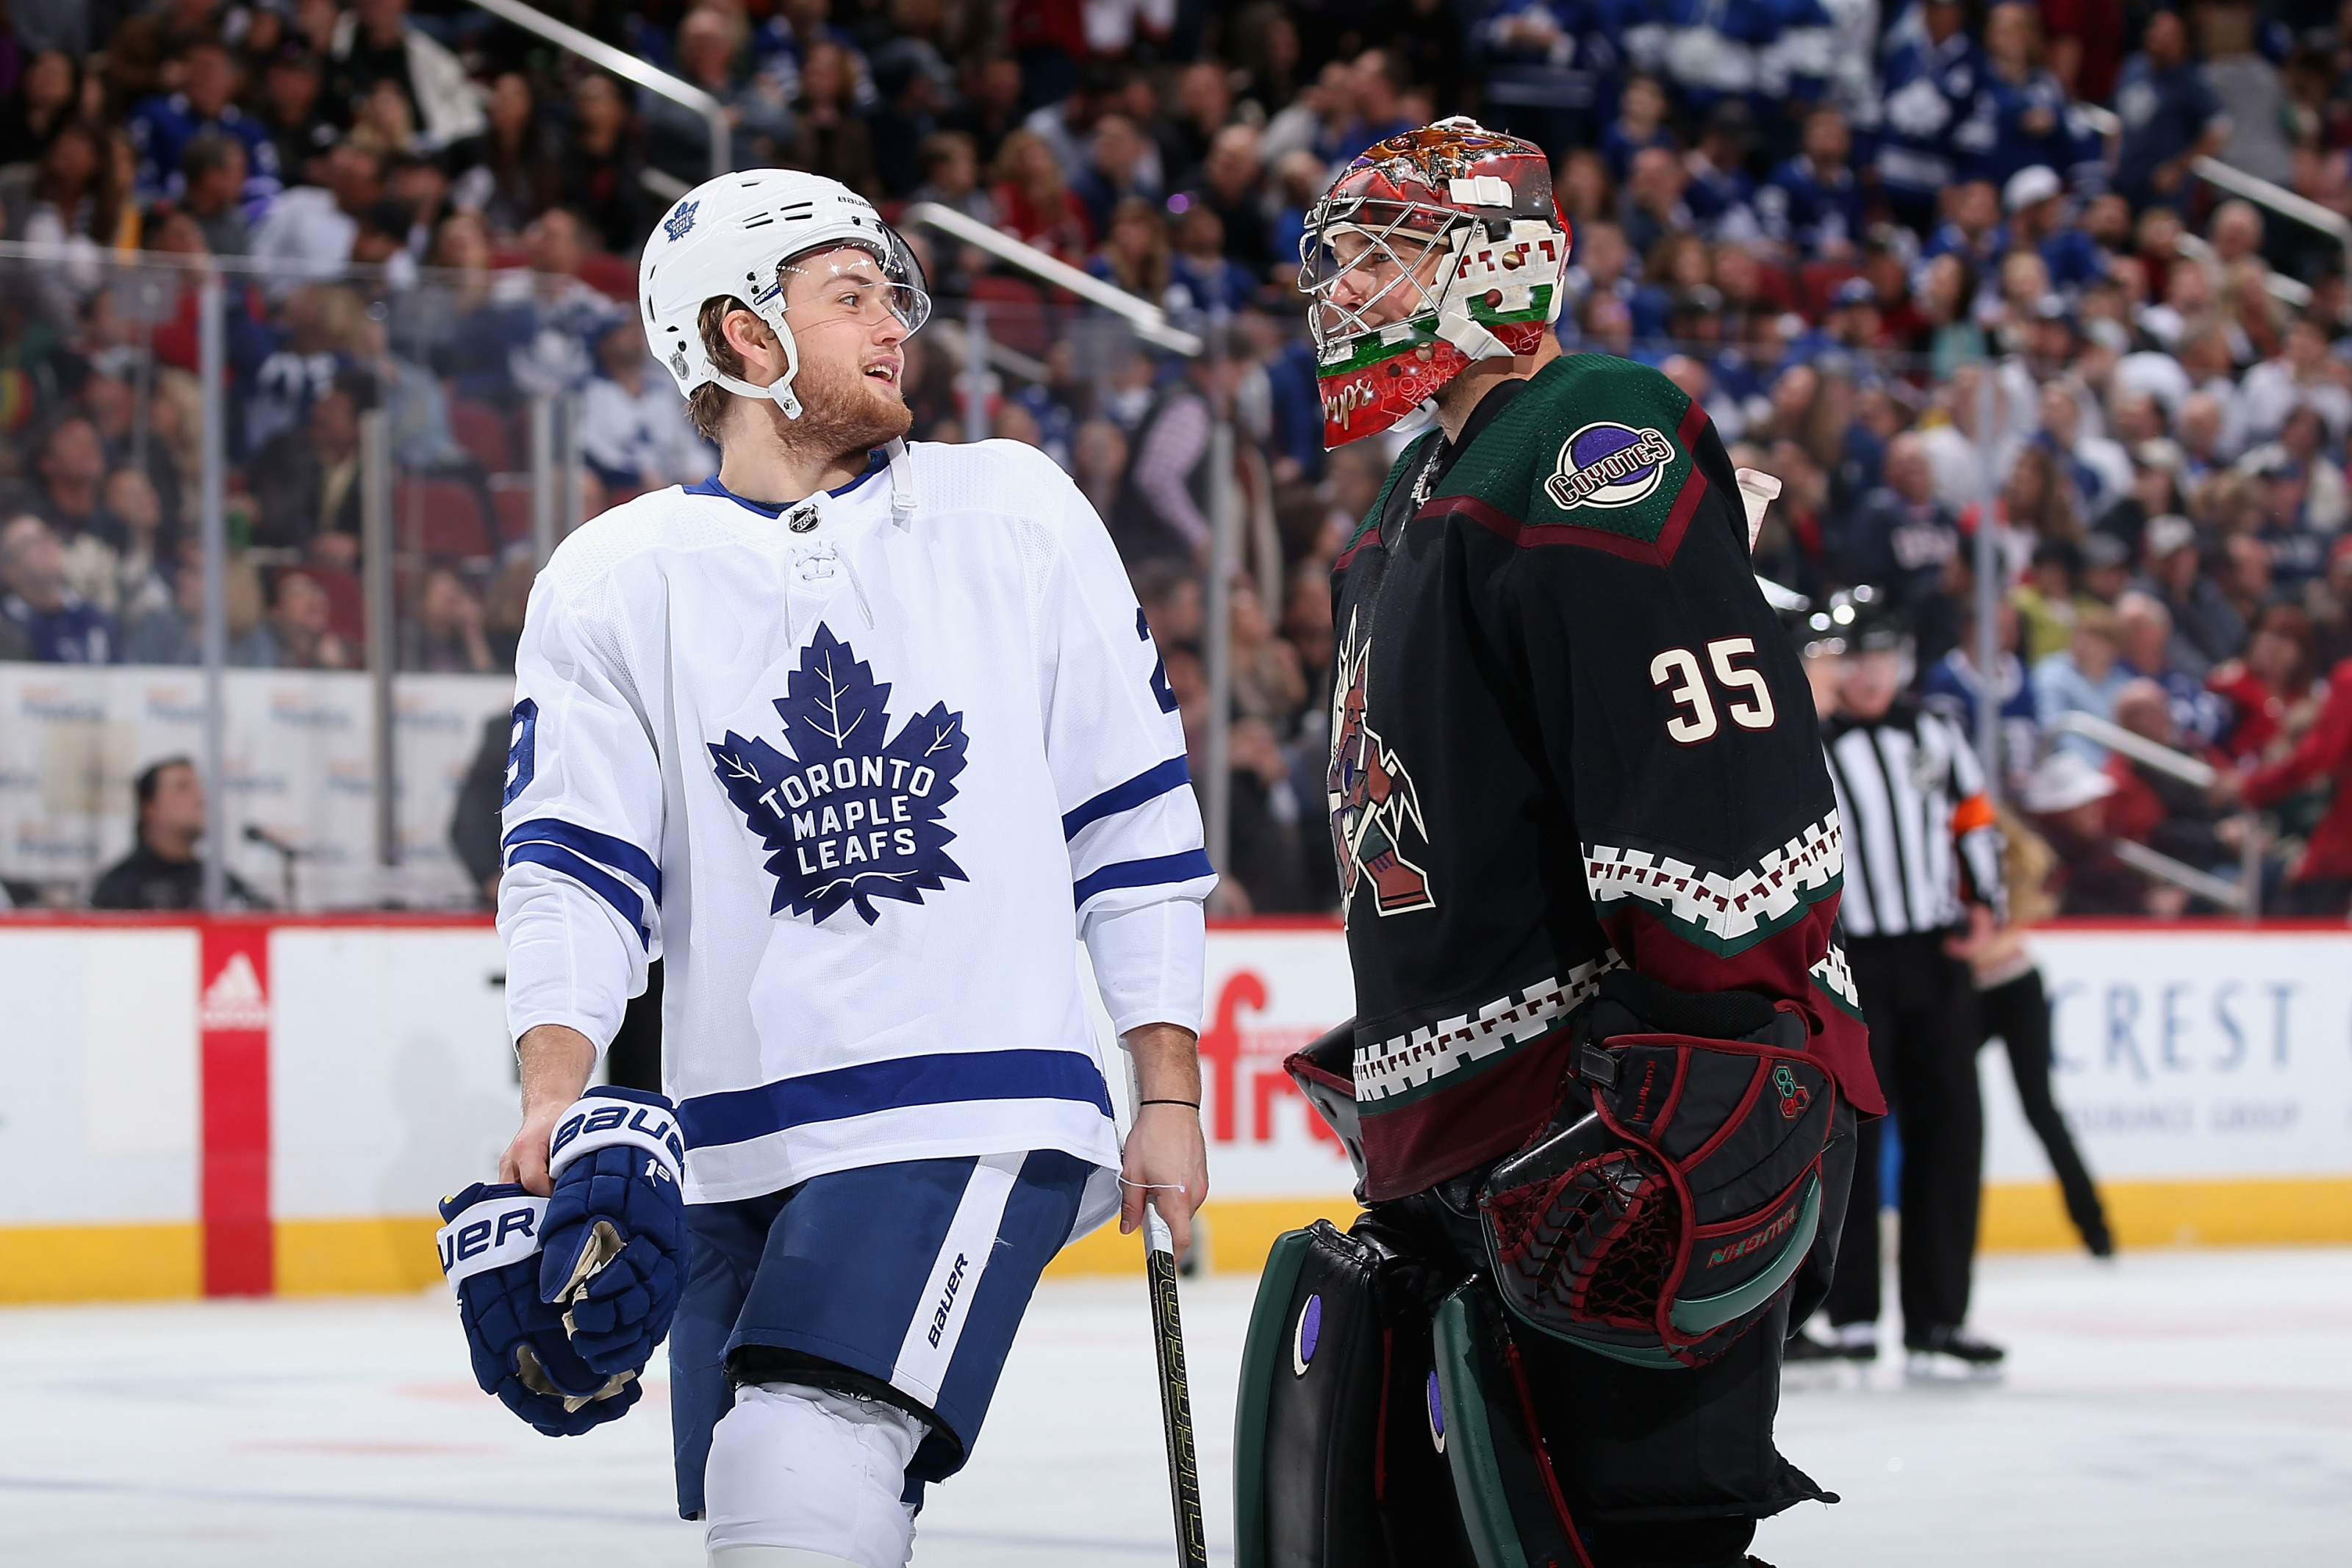 Toronto Maple Leafs Hypothetical Trade With The Coyotes